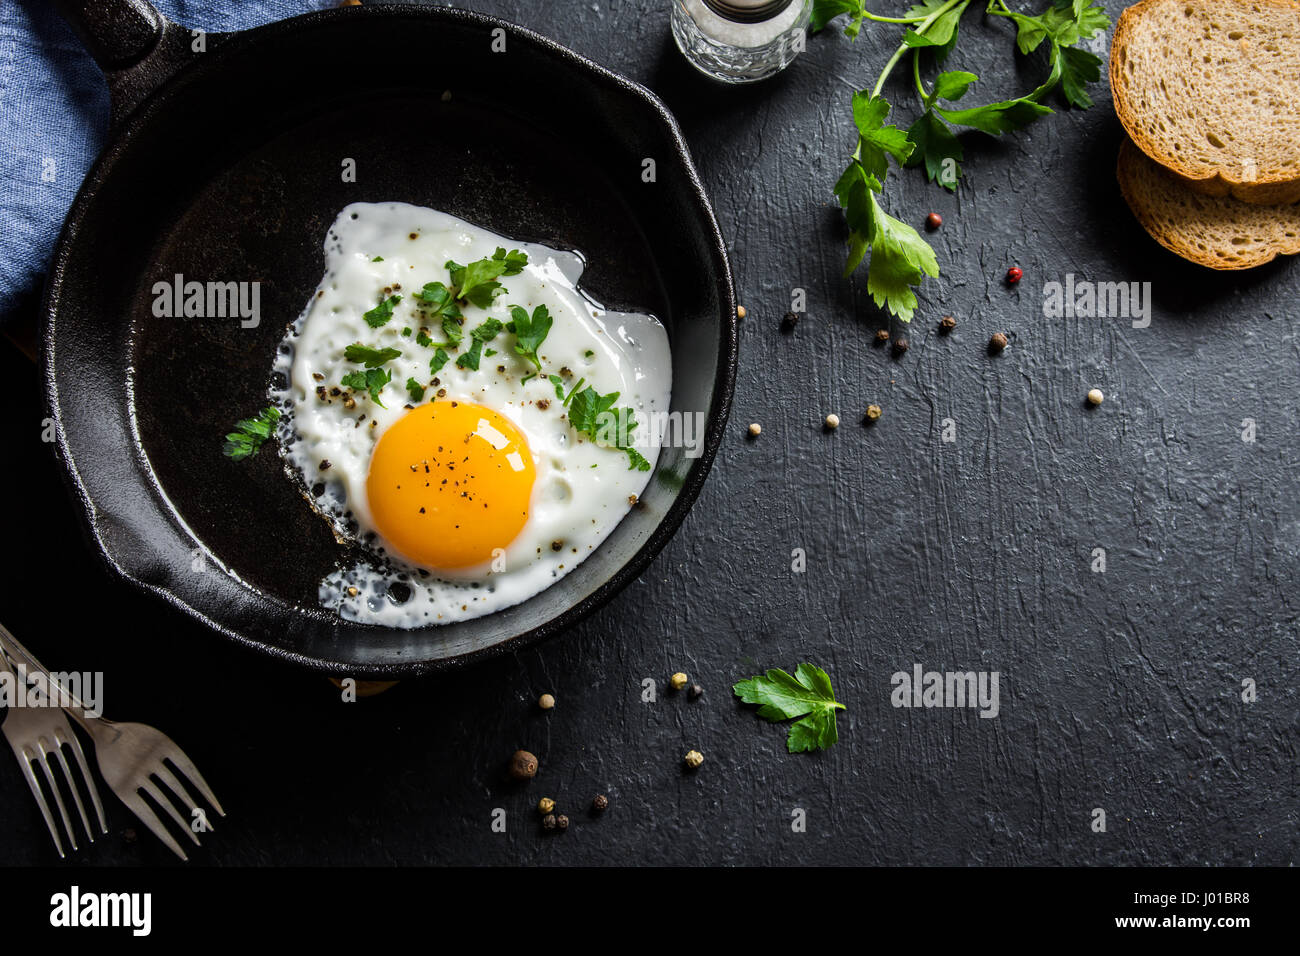 Fried egg. Close up view of the fried egg on a frying pan. Salted and spiced fried egg with parsley on cast iron - Stock Image